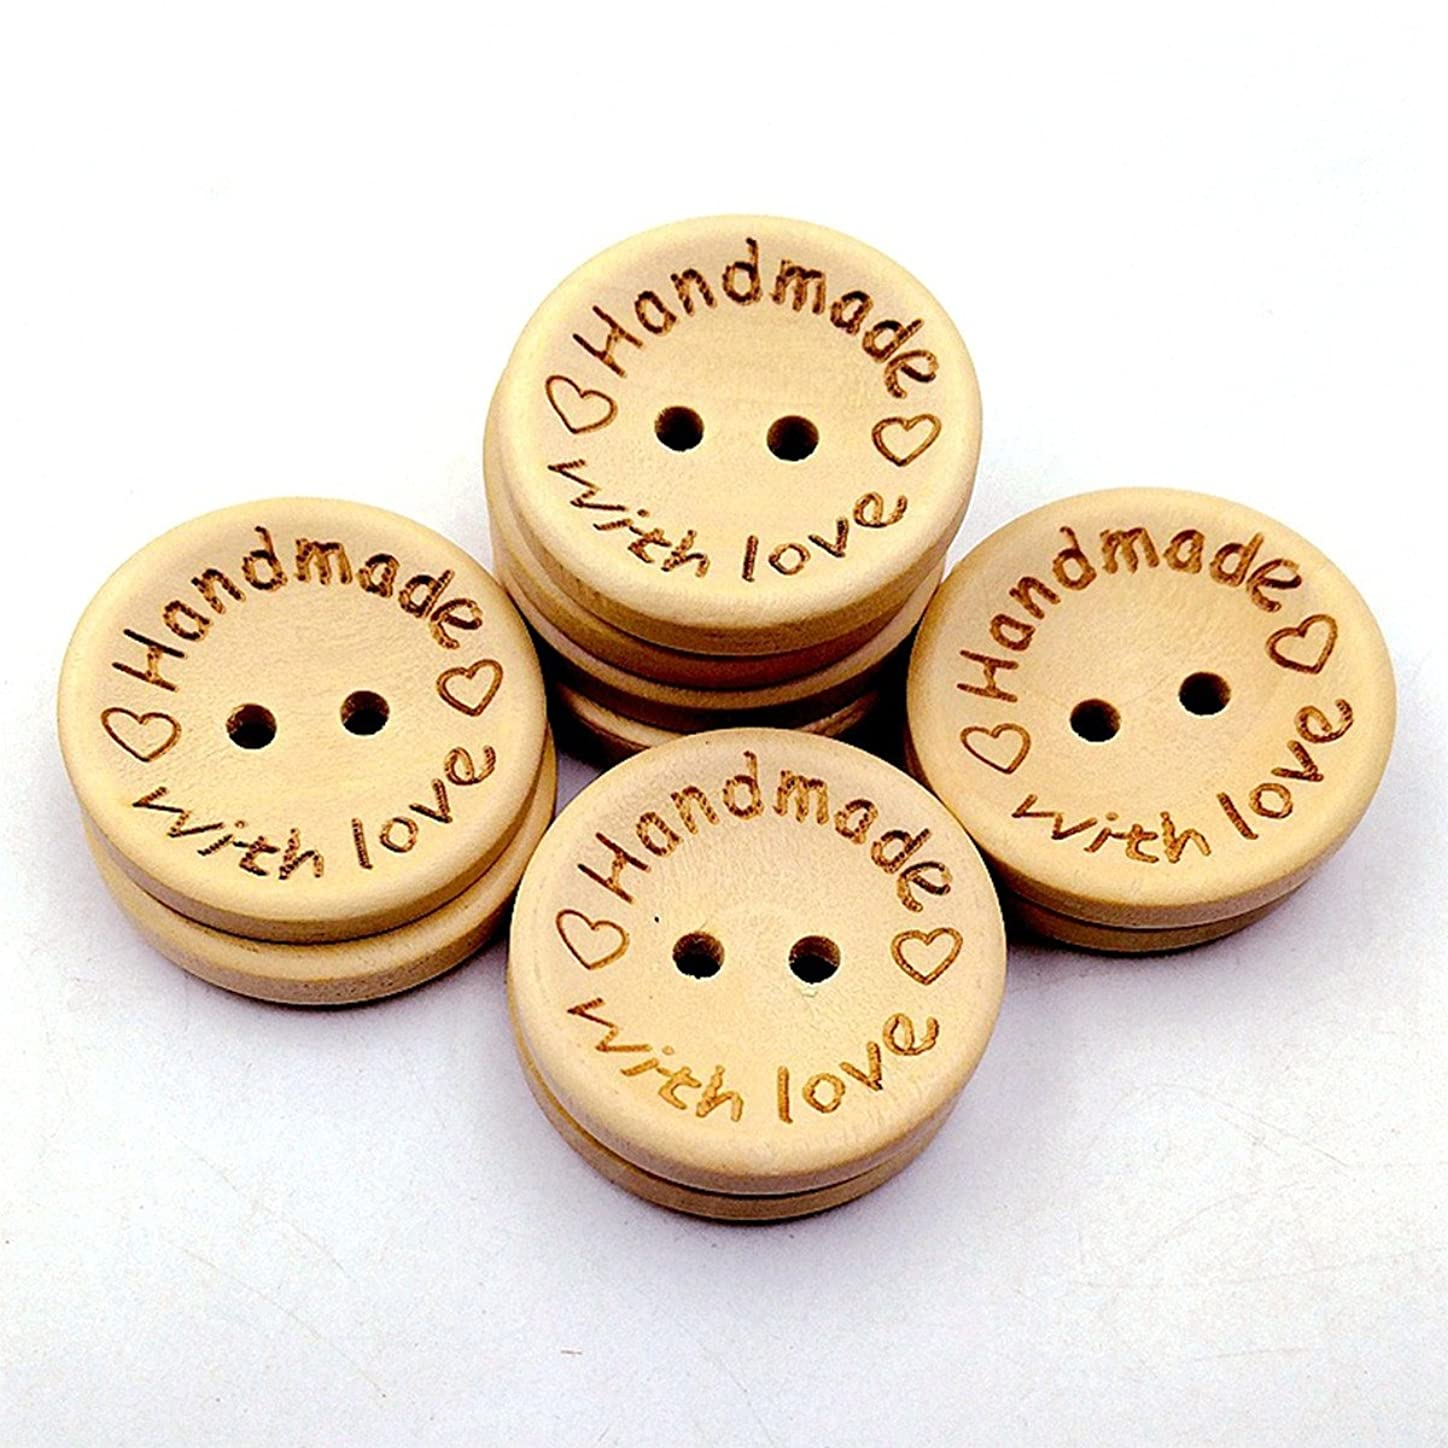 100pcs Wooden Handmade with Love Round Crafts Decor 2 Holes Wooden Sewing Buttons,15MM xbakxox083547